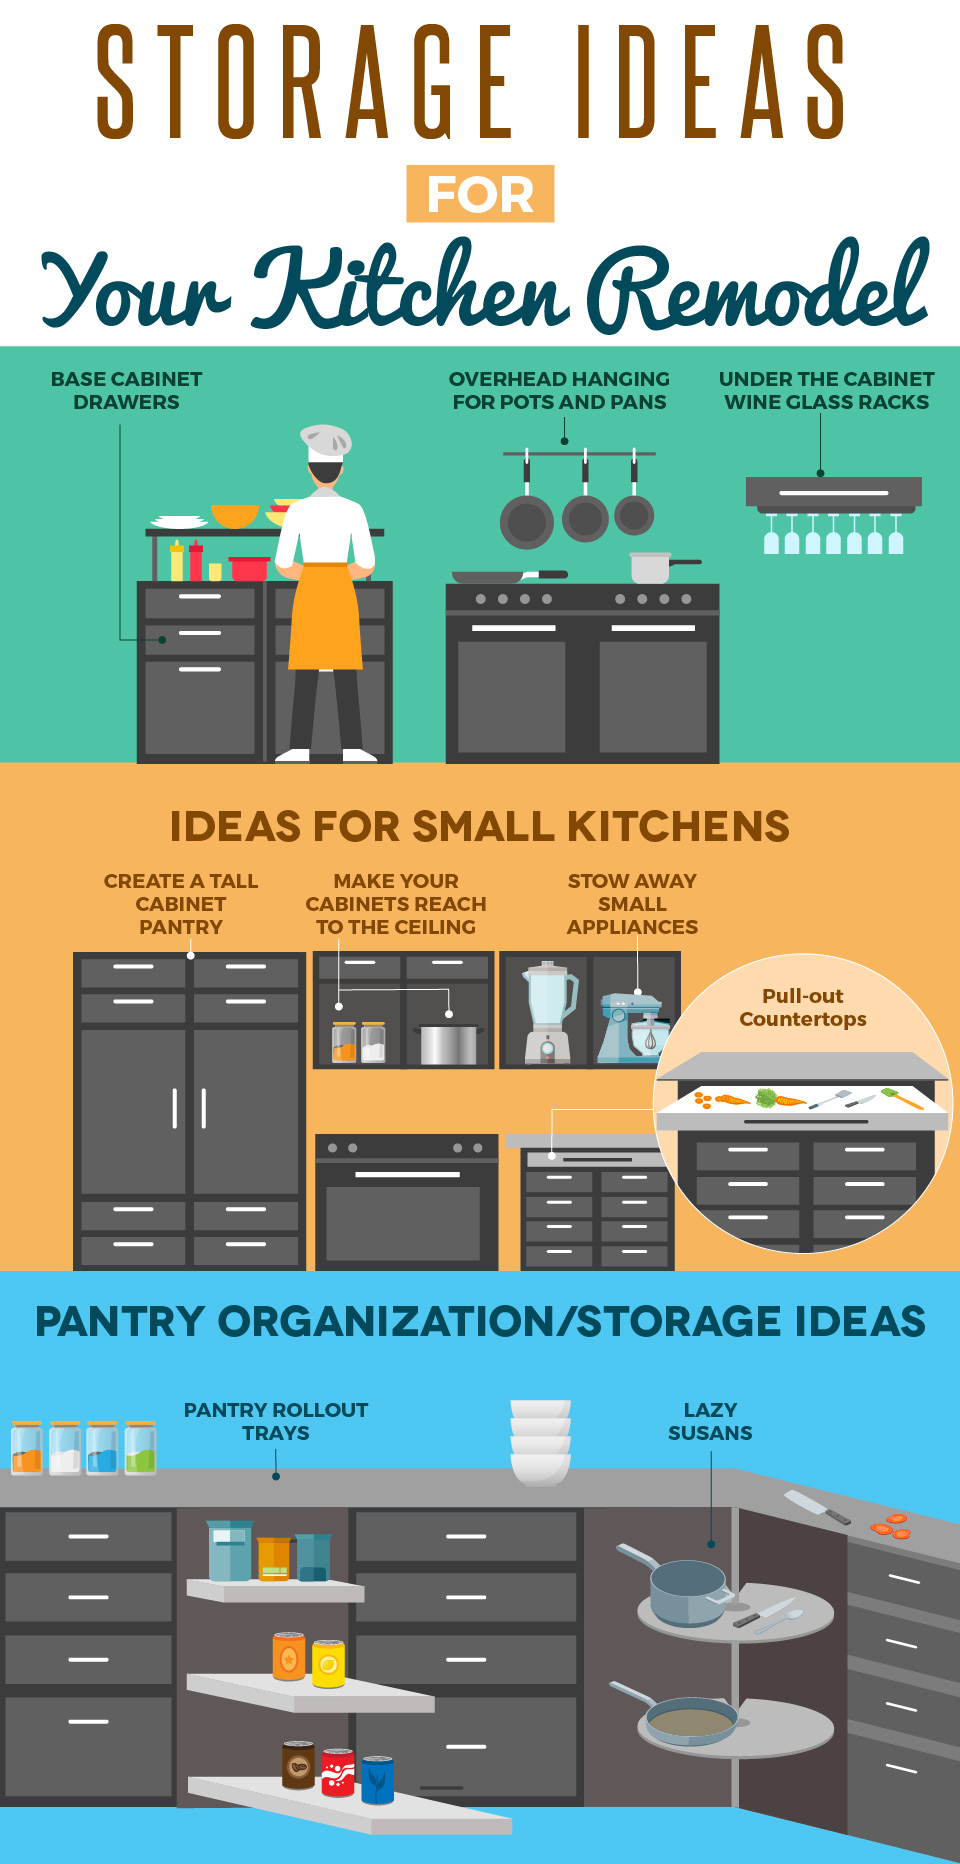 Storage Ideas for Your Kitchen Remodel